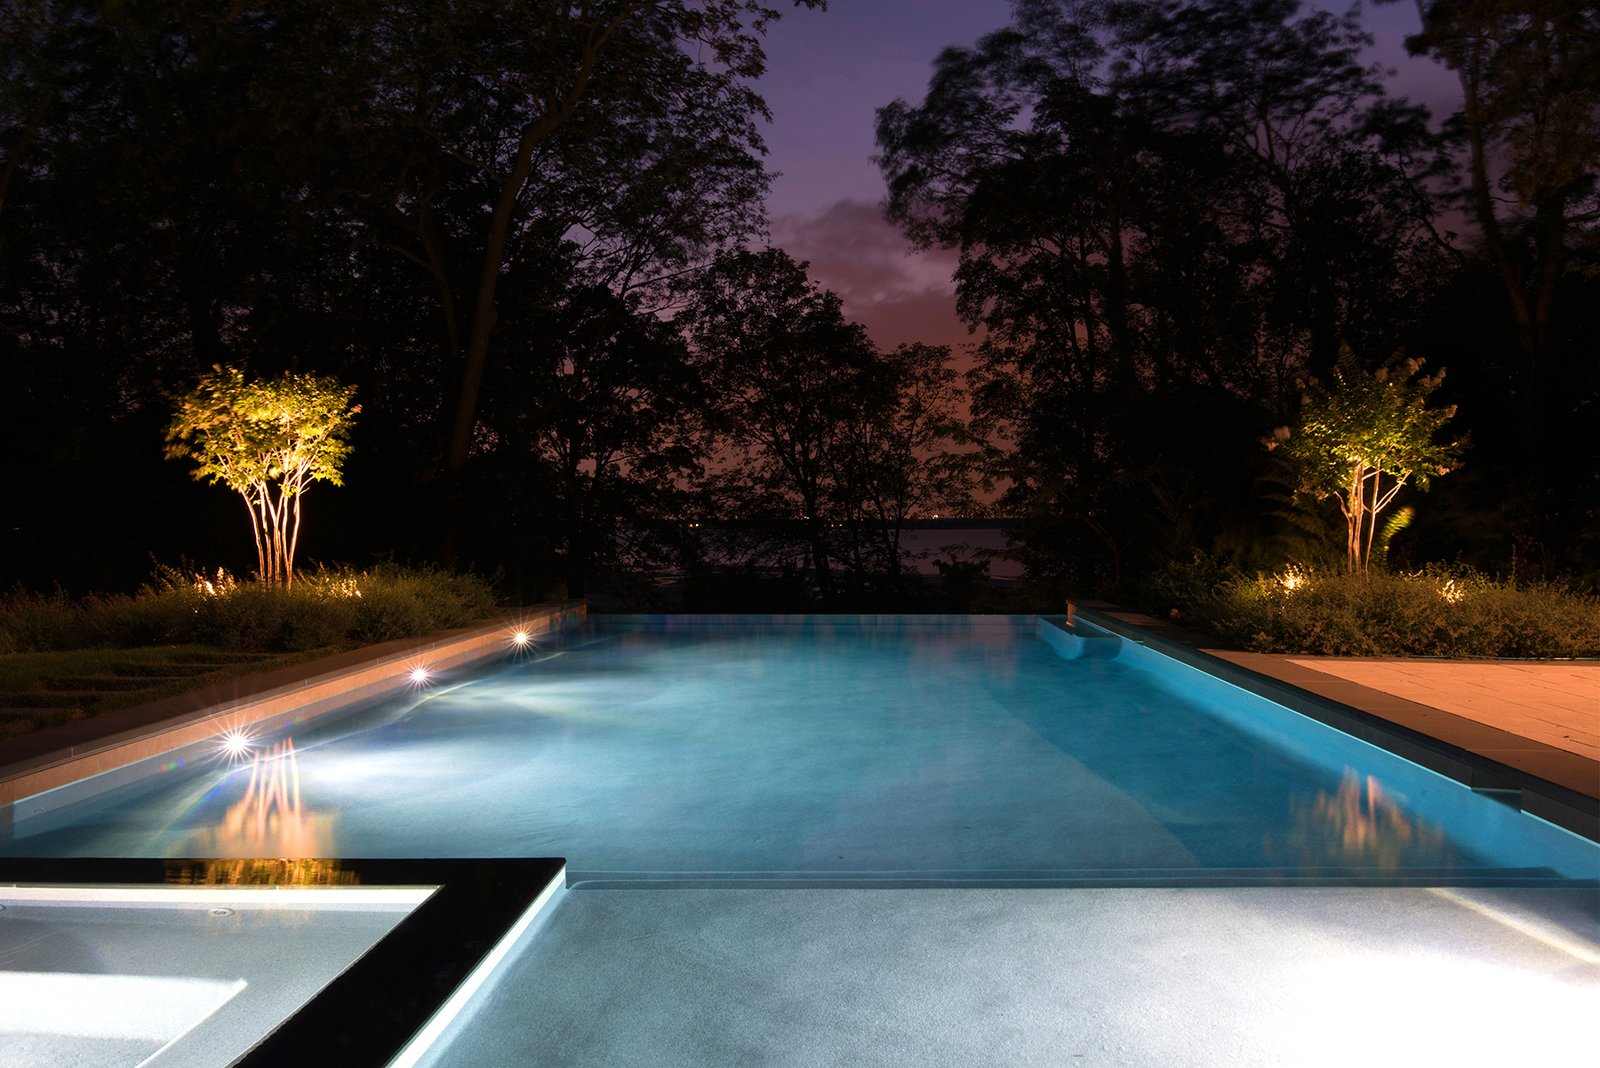 The pool, lighting, and landscape frame dramatic views of sunsets over the Long Island Sound.  Free Float Pool Cabana by The UP Studio